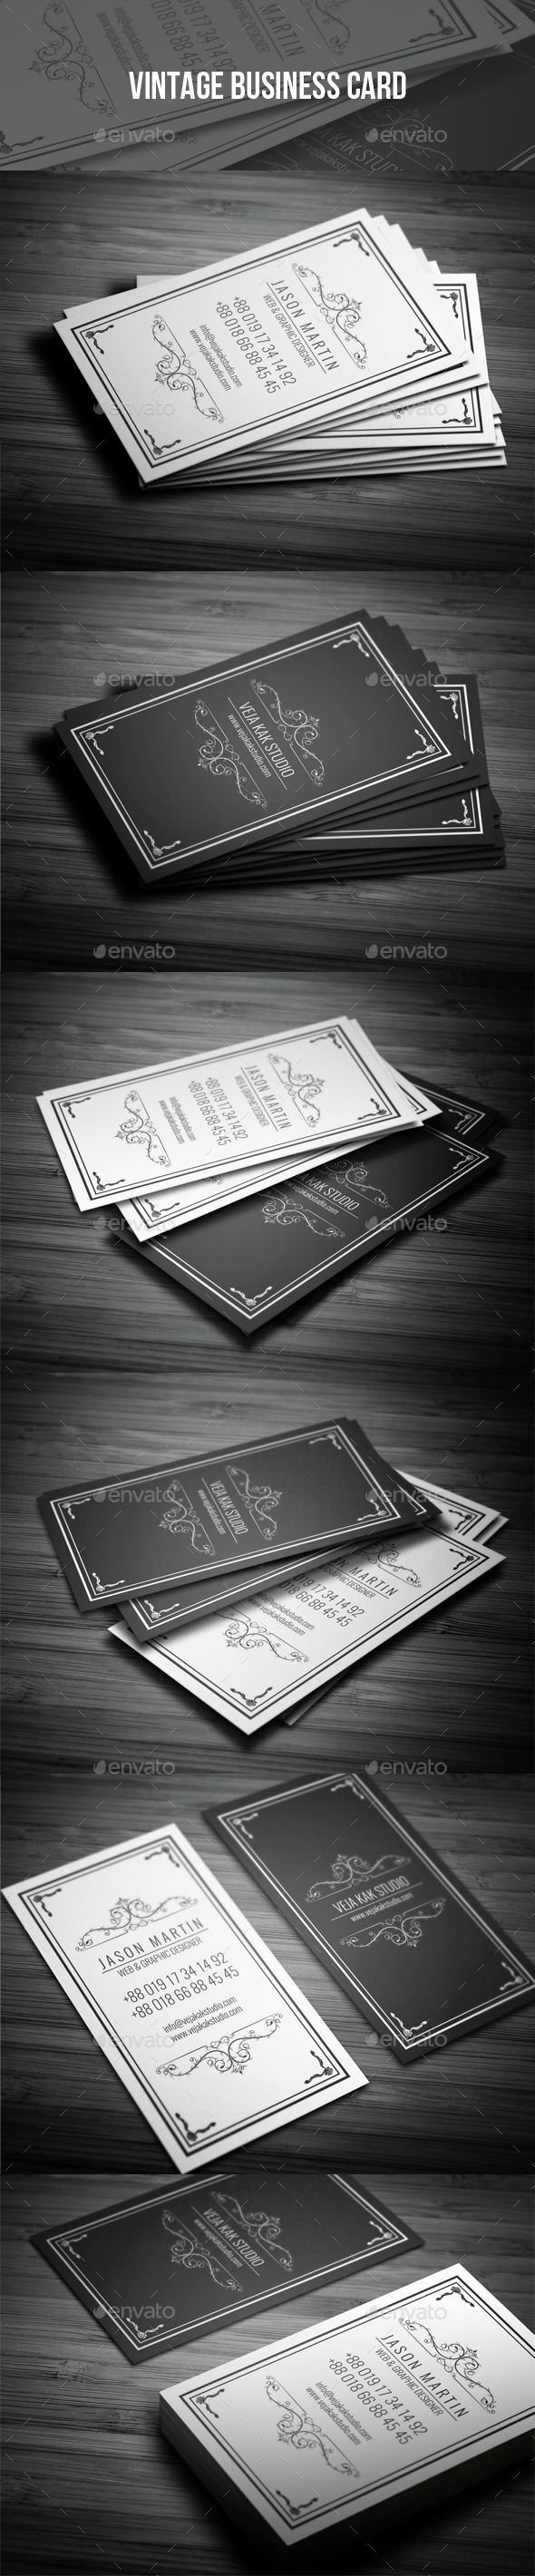 Vintage Business Card - Retro/Vintage Business Cards Download here : http://graphicriver.net/item/vintage-business-card/15454588?s_rank=297&ref=Al-fatih